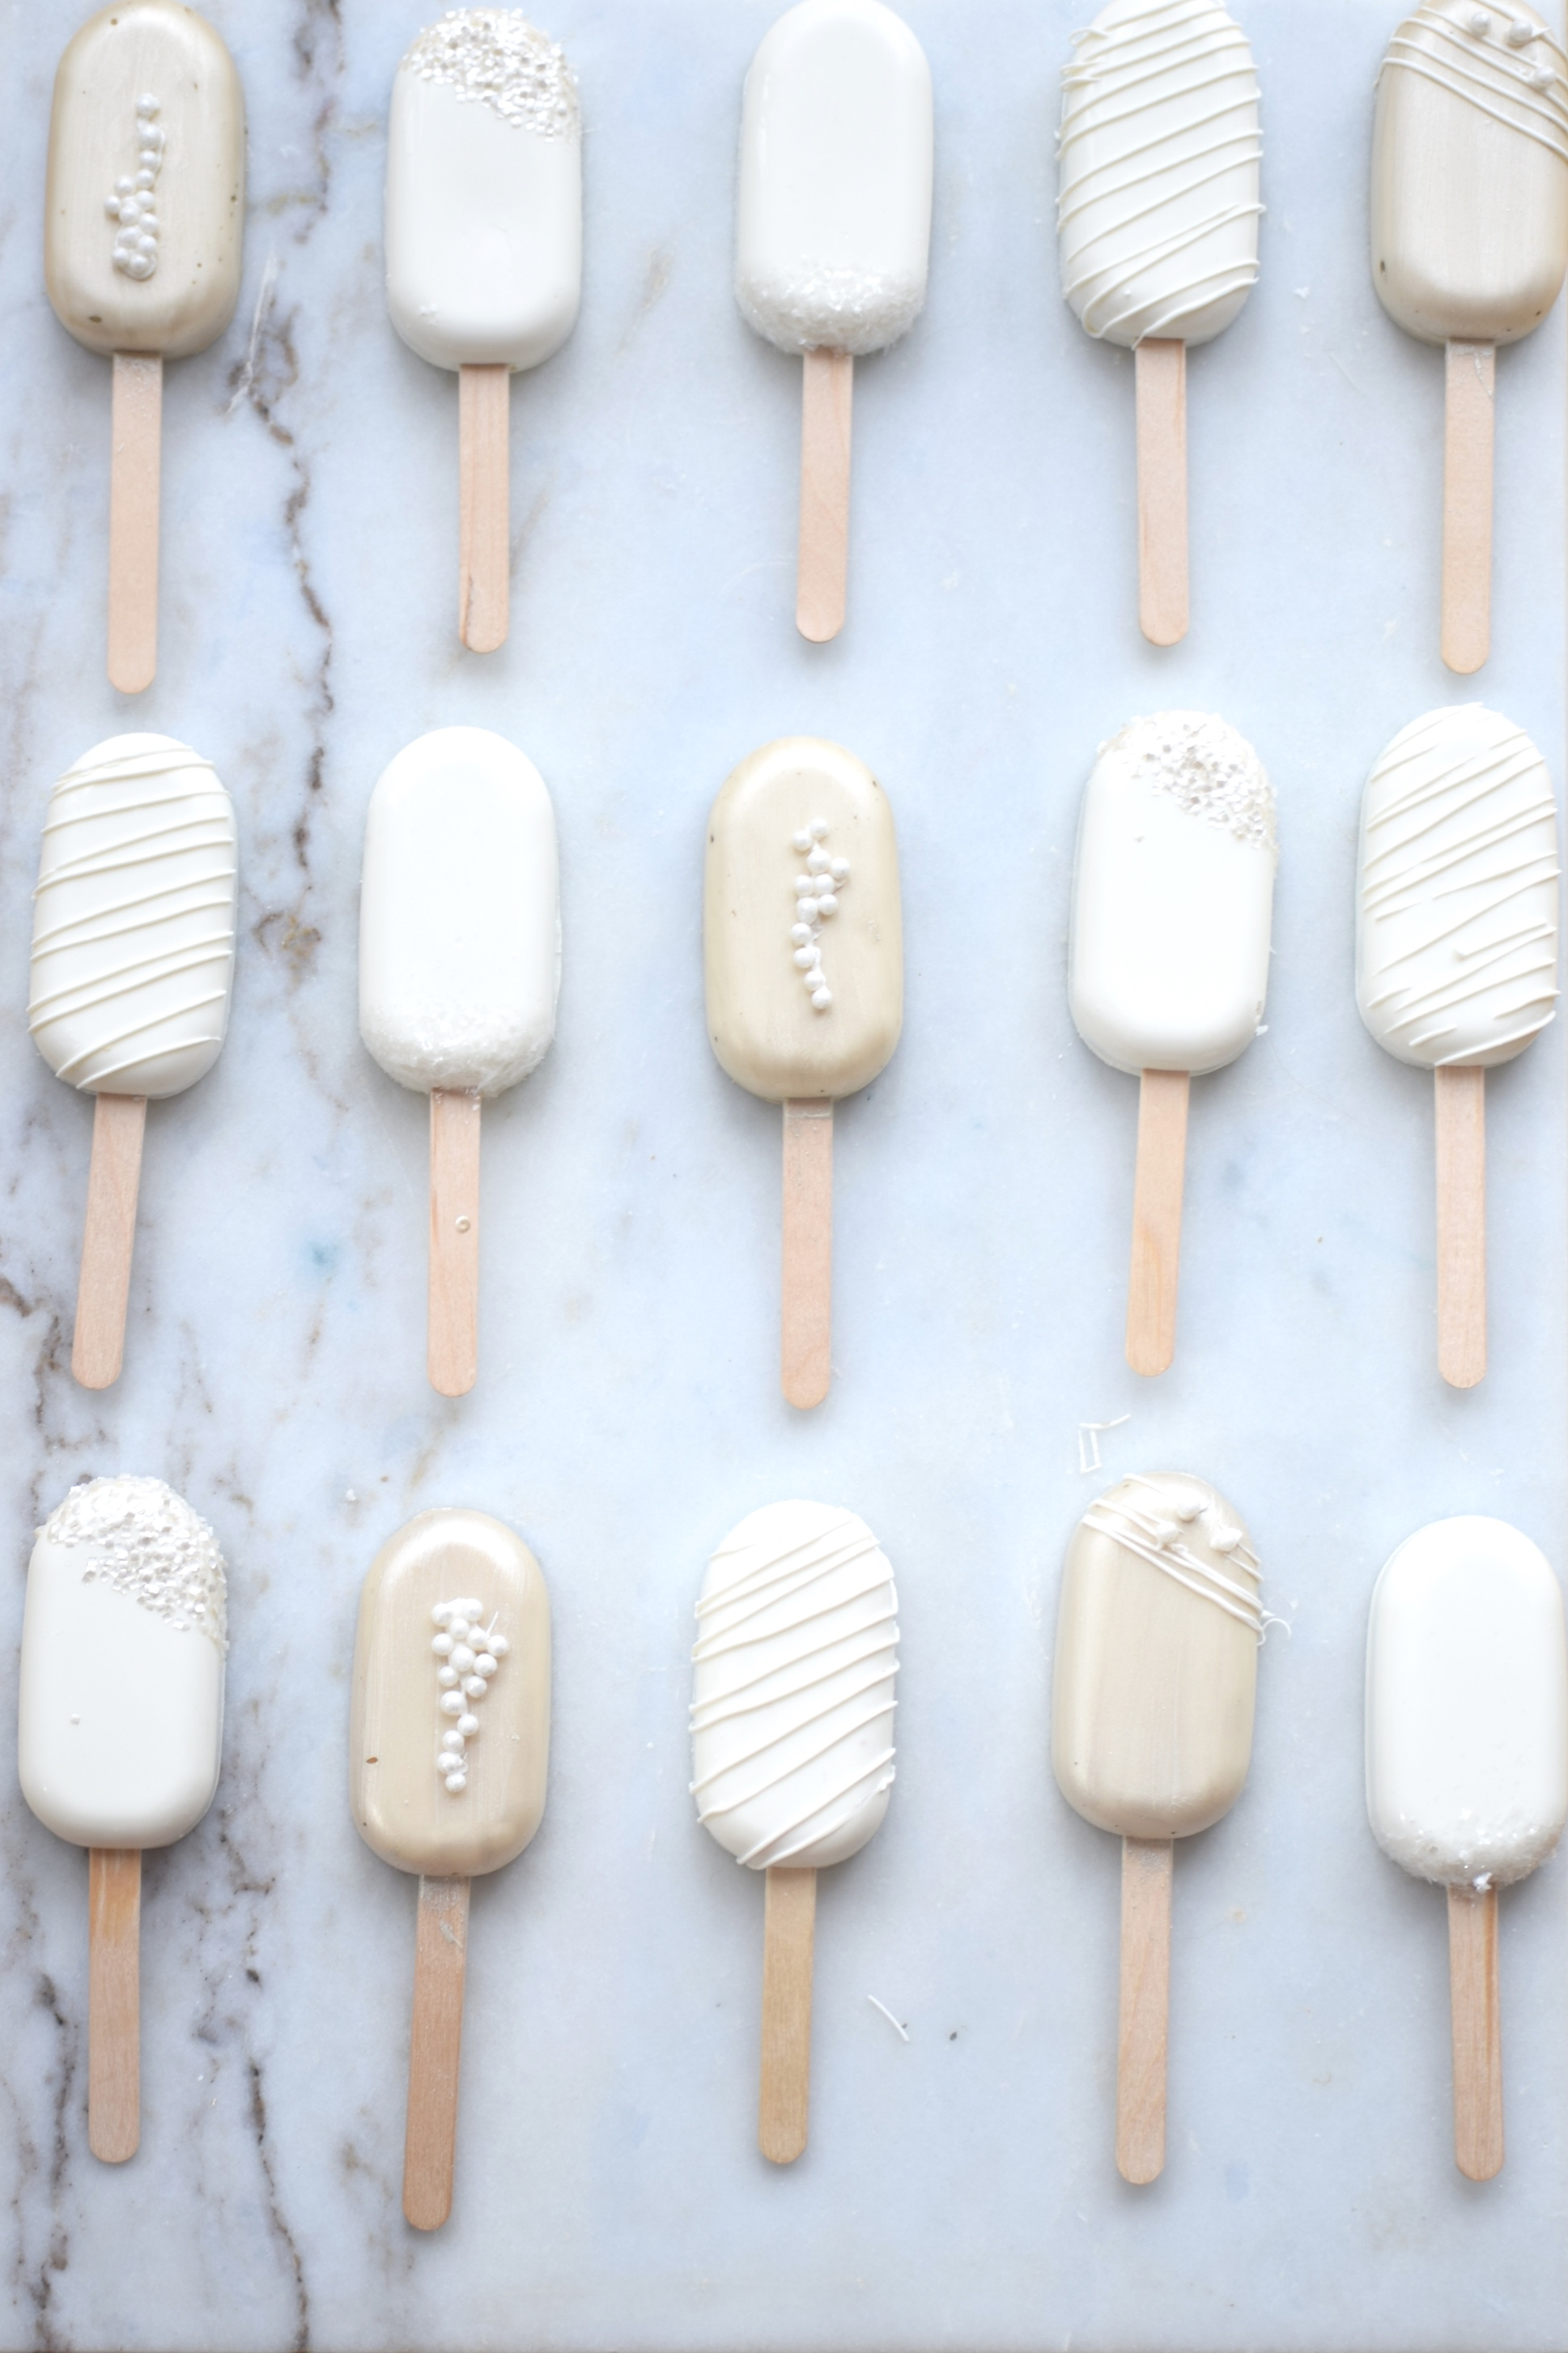 White and gold wedding cake popsicles